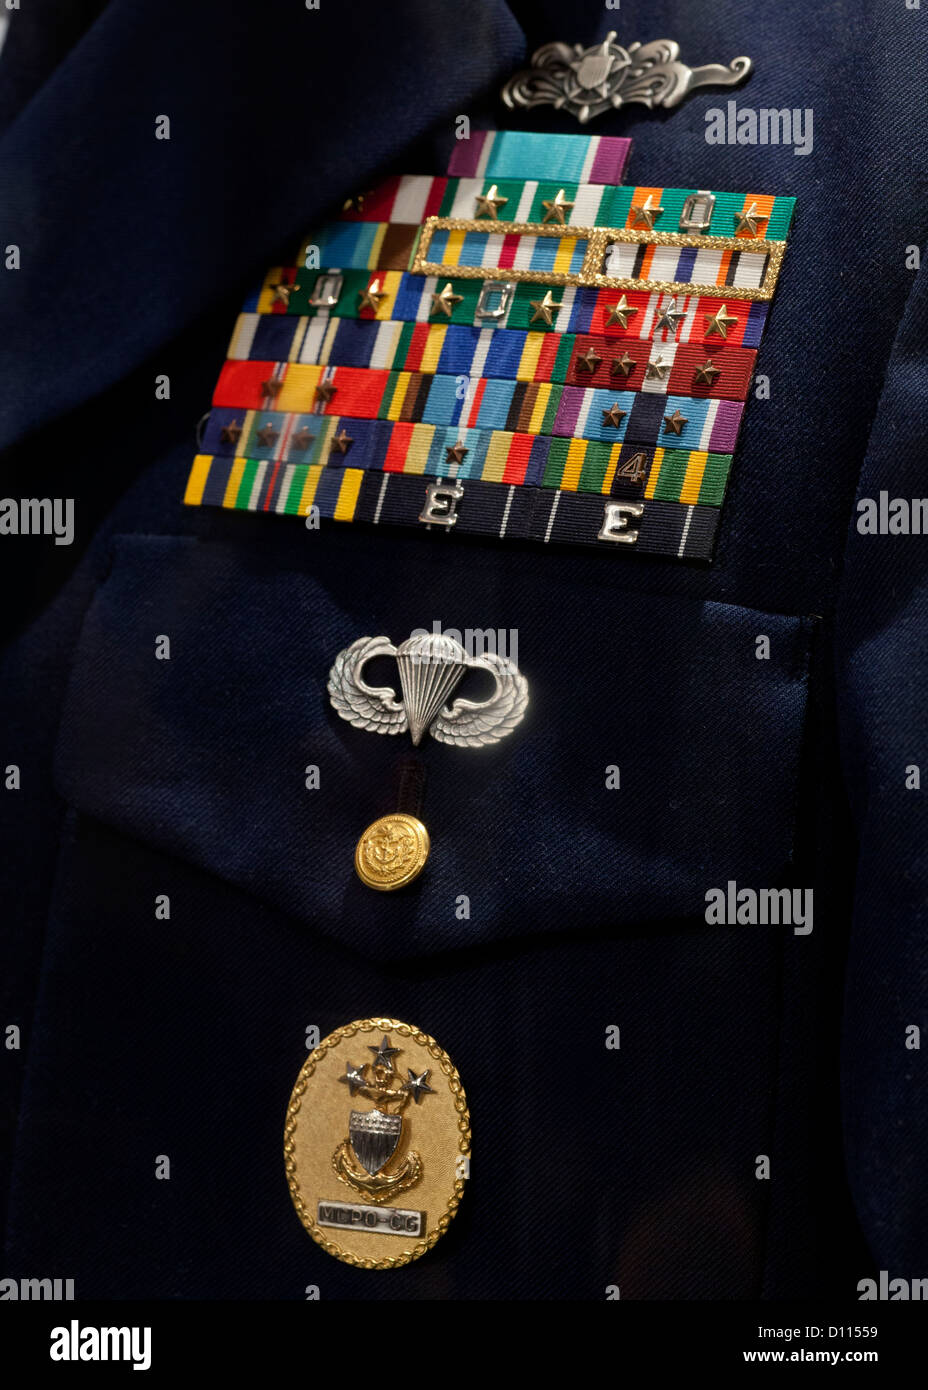 US Coast Guard Service Dress blue uniform with honor ribbons and medals - Stock Image